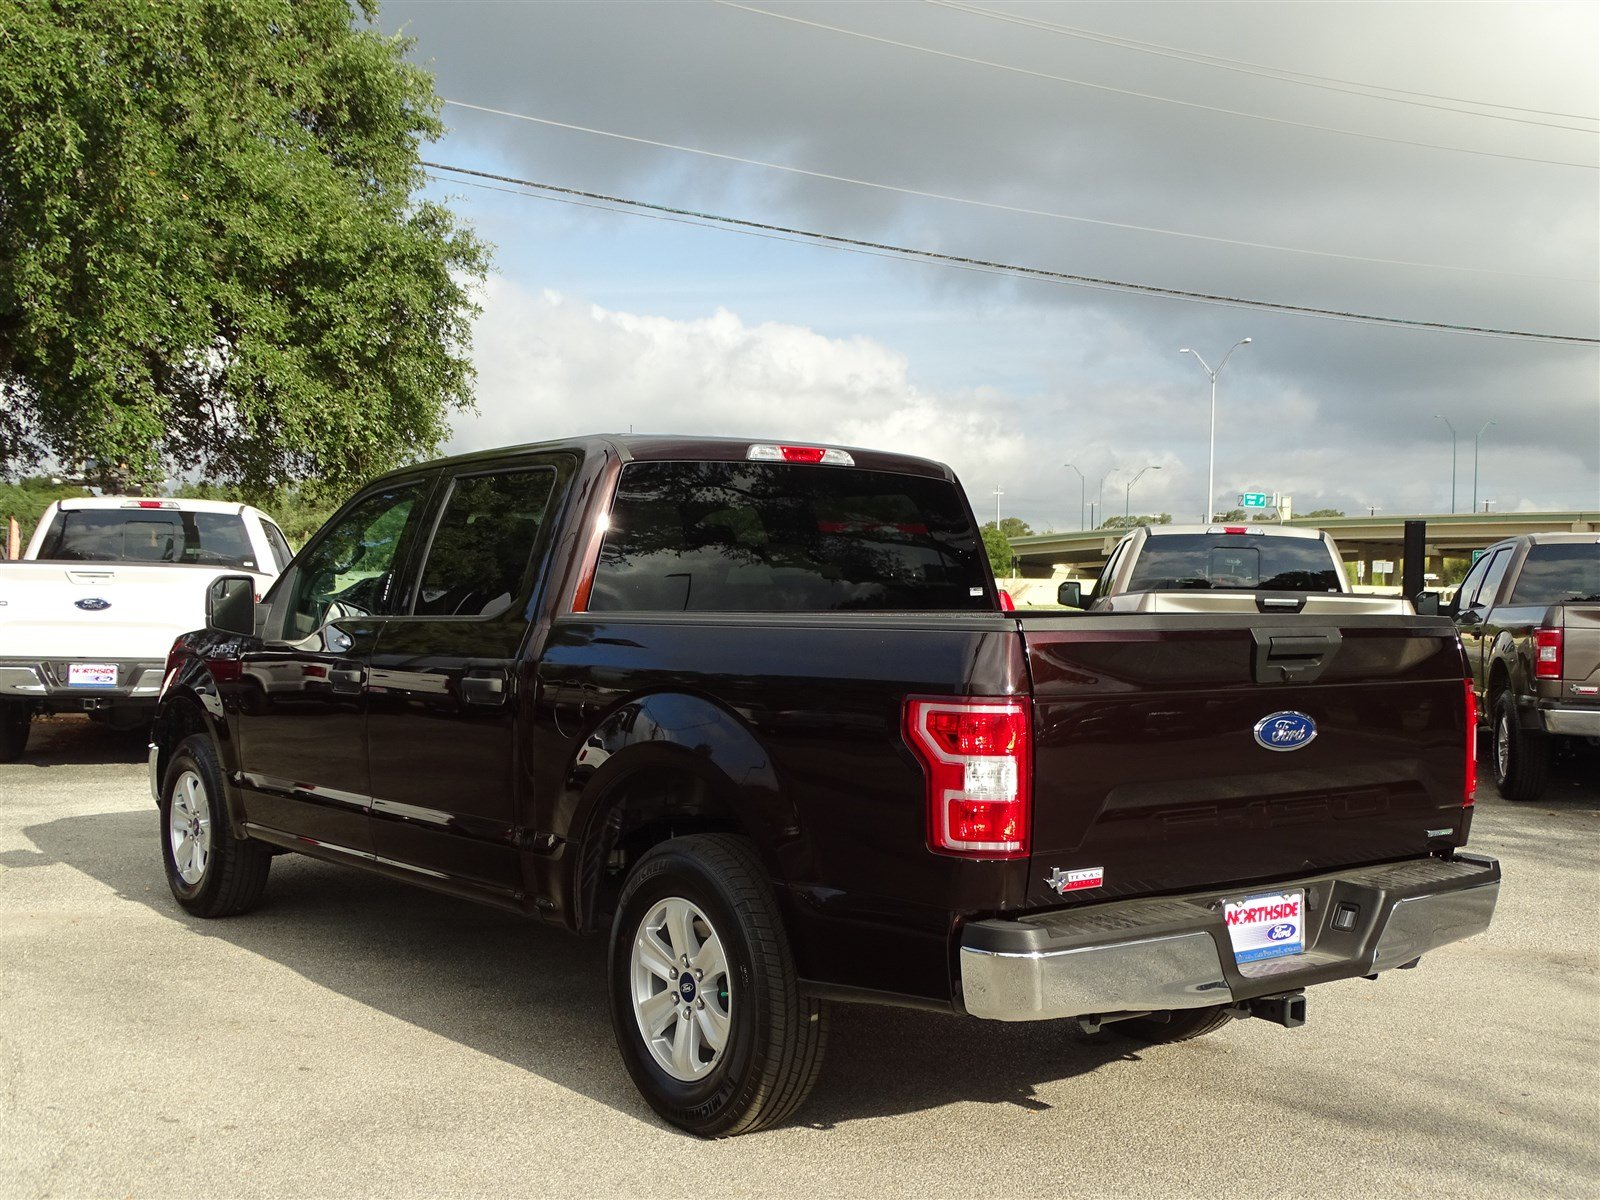 425655562353450e7d86f63baf6ce938 new 2018 ford f 150 xlt crew cab pickup in san antonio a05547  at nearapp.co